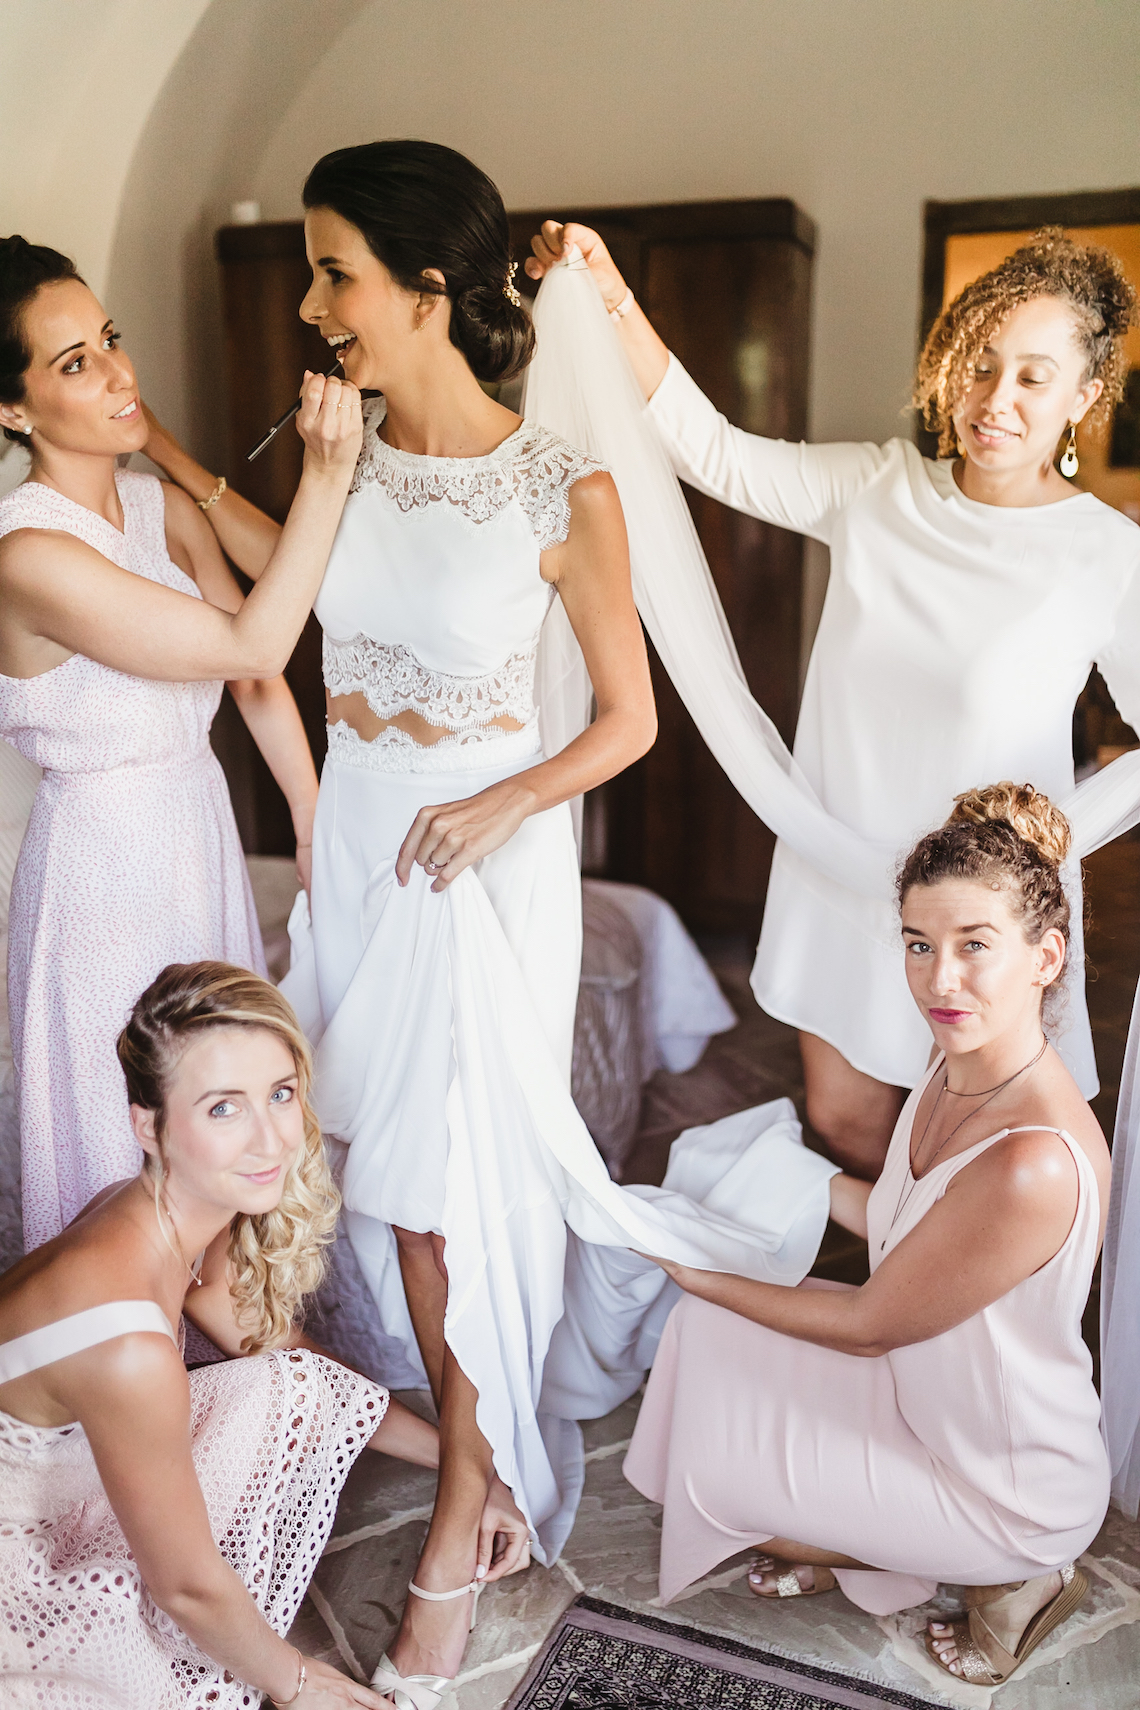 The Dos And Don'ts Of Traveling With Your Wedding Dress